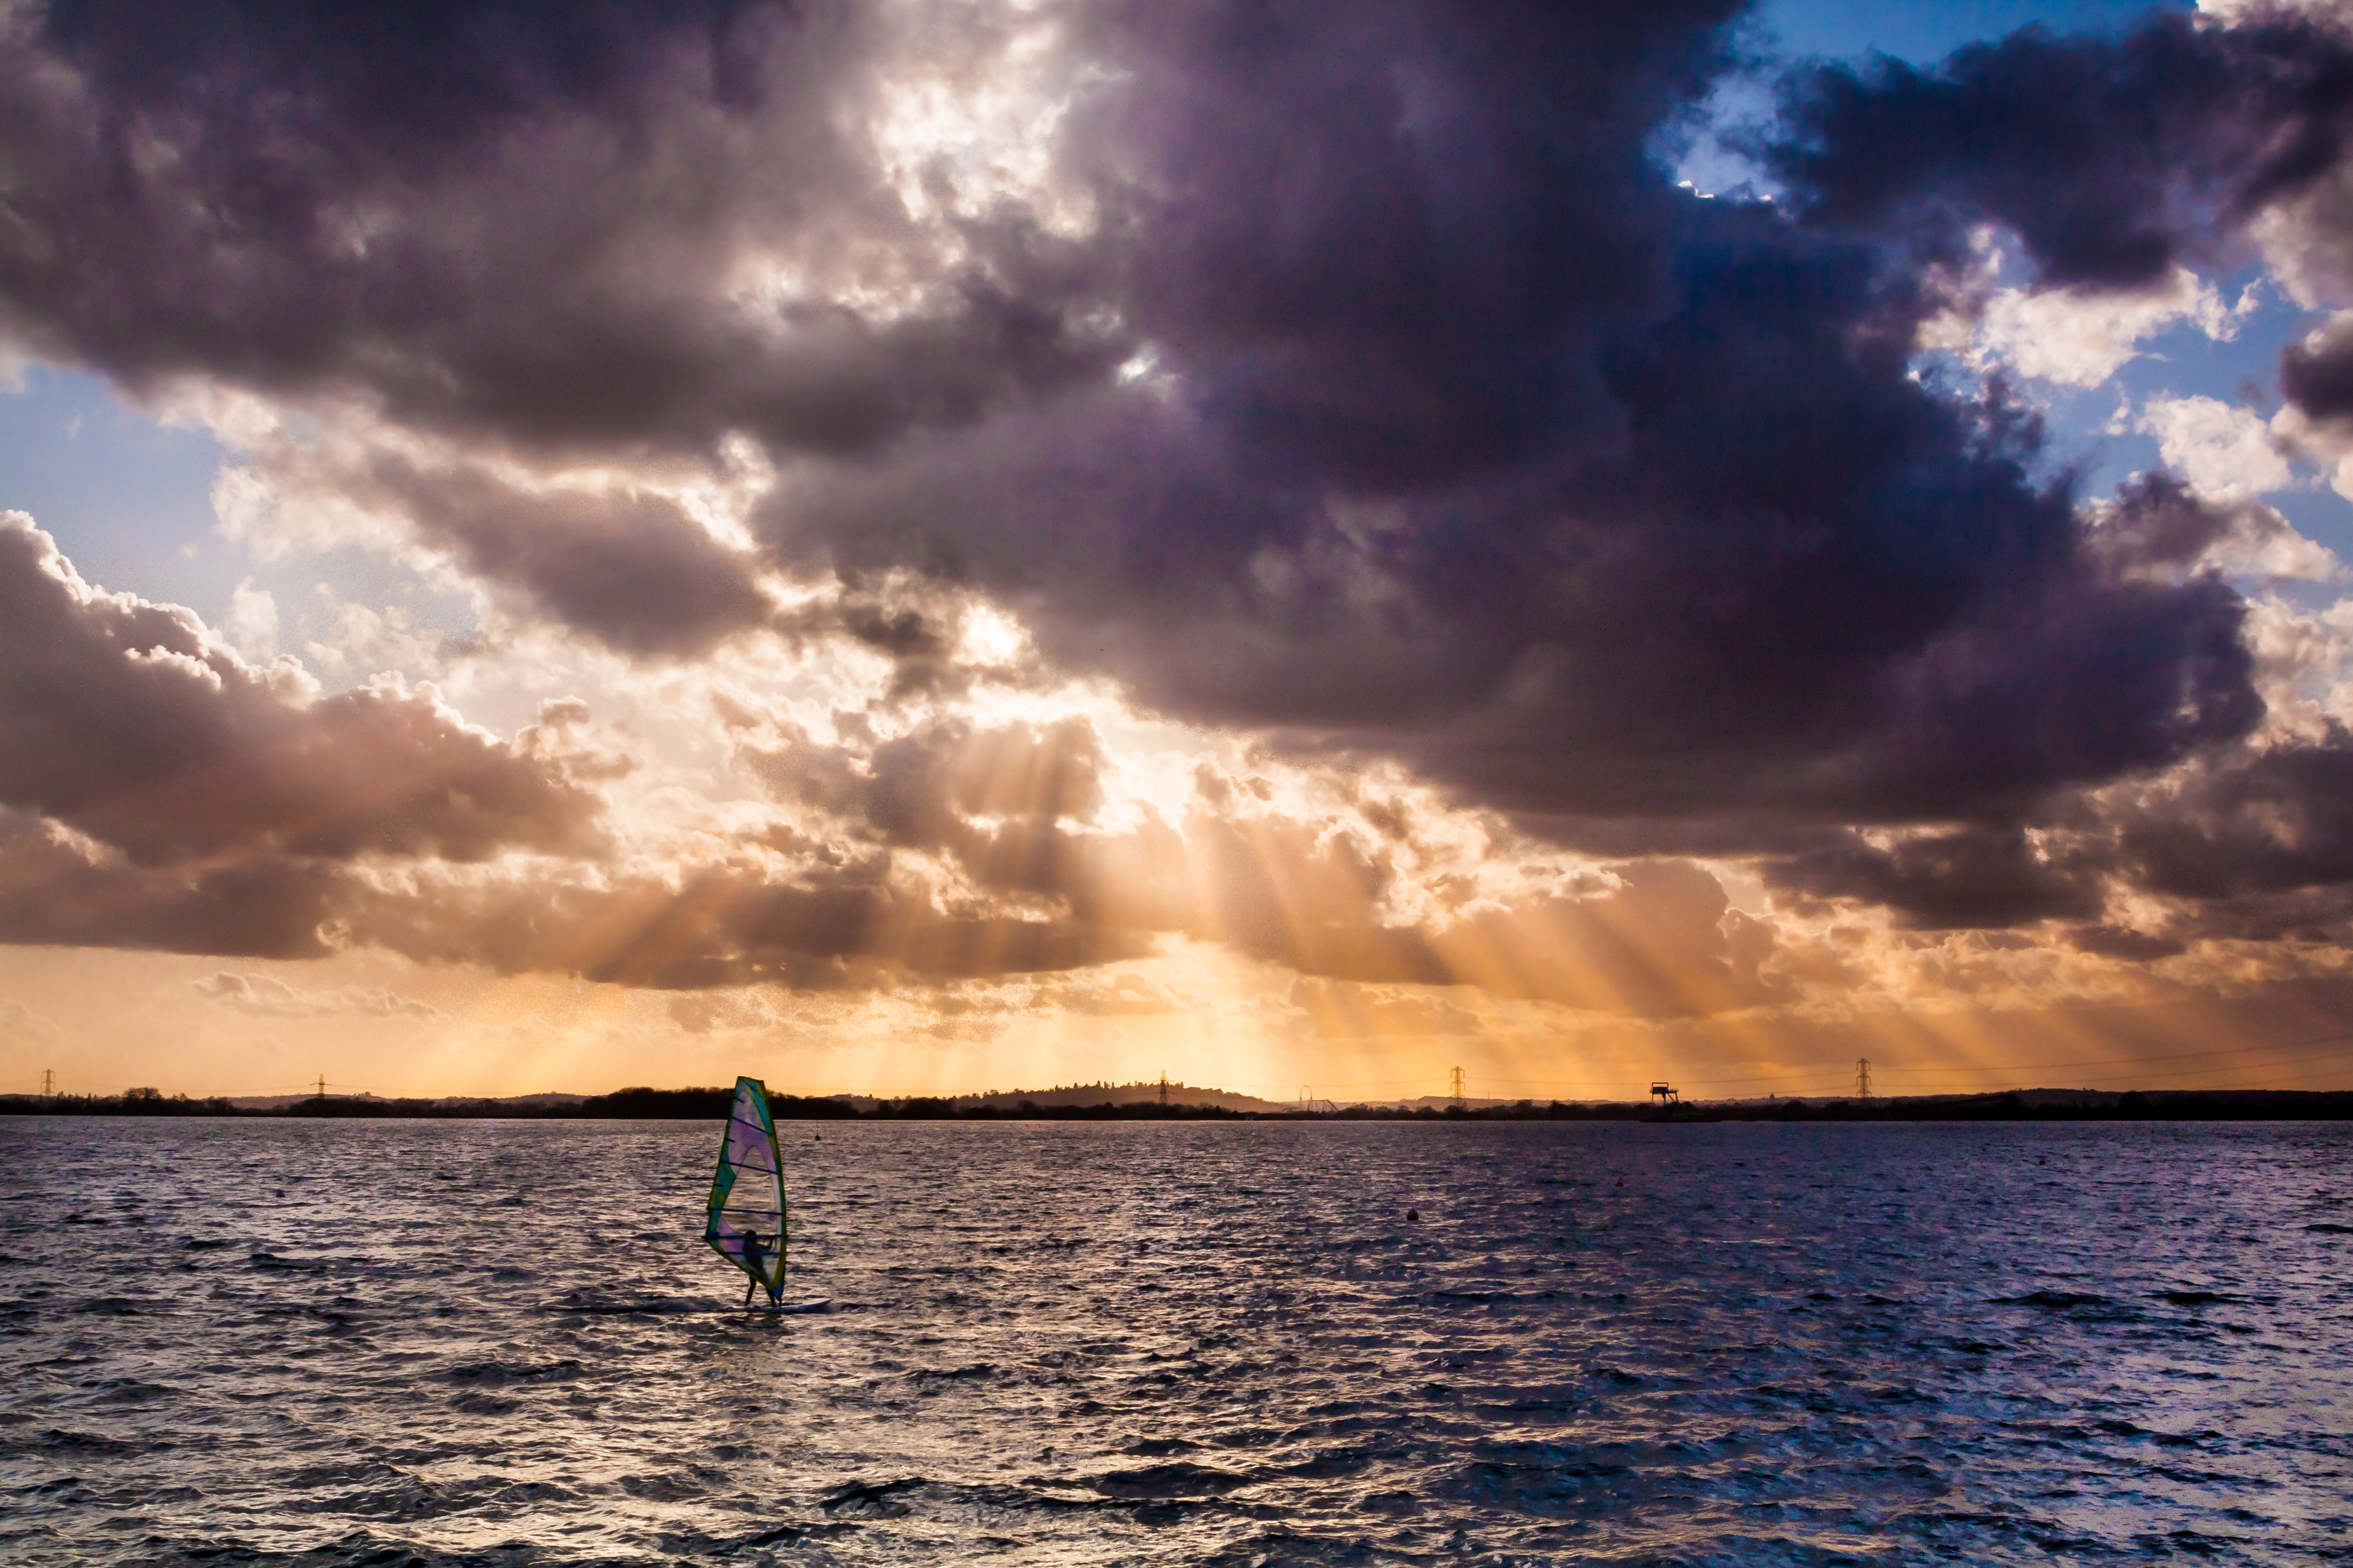 A windsurfer on a lake during sunset